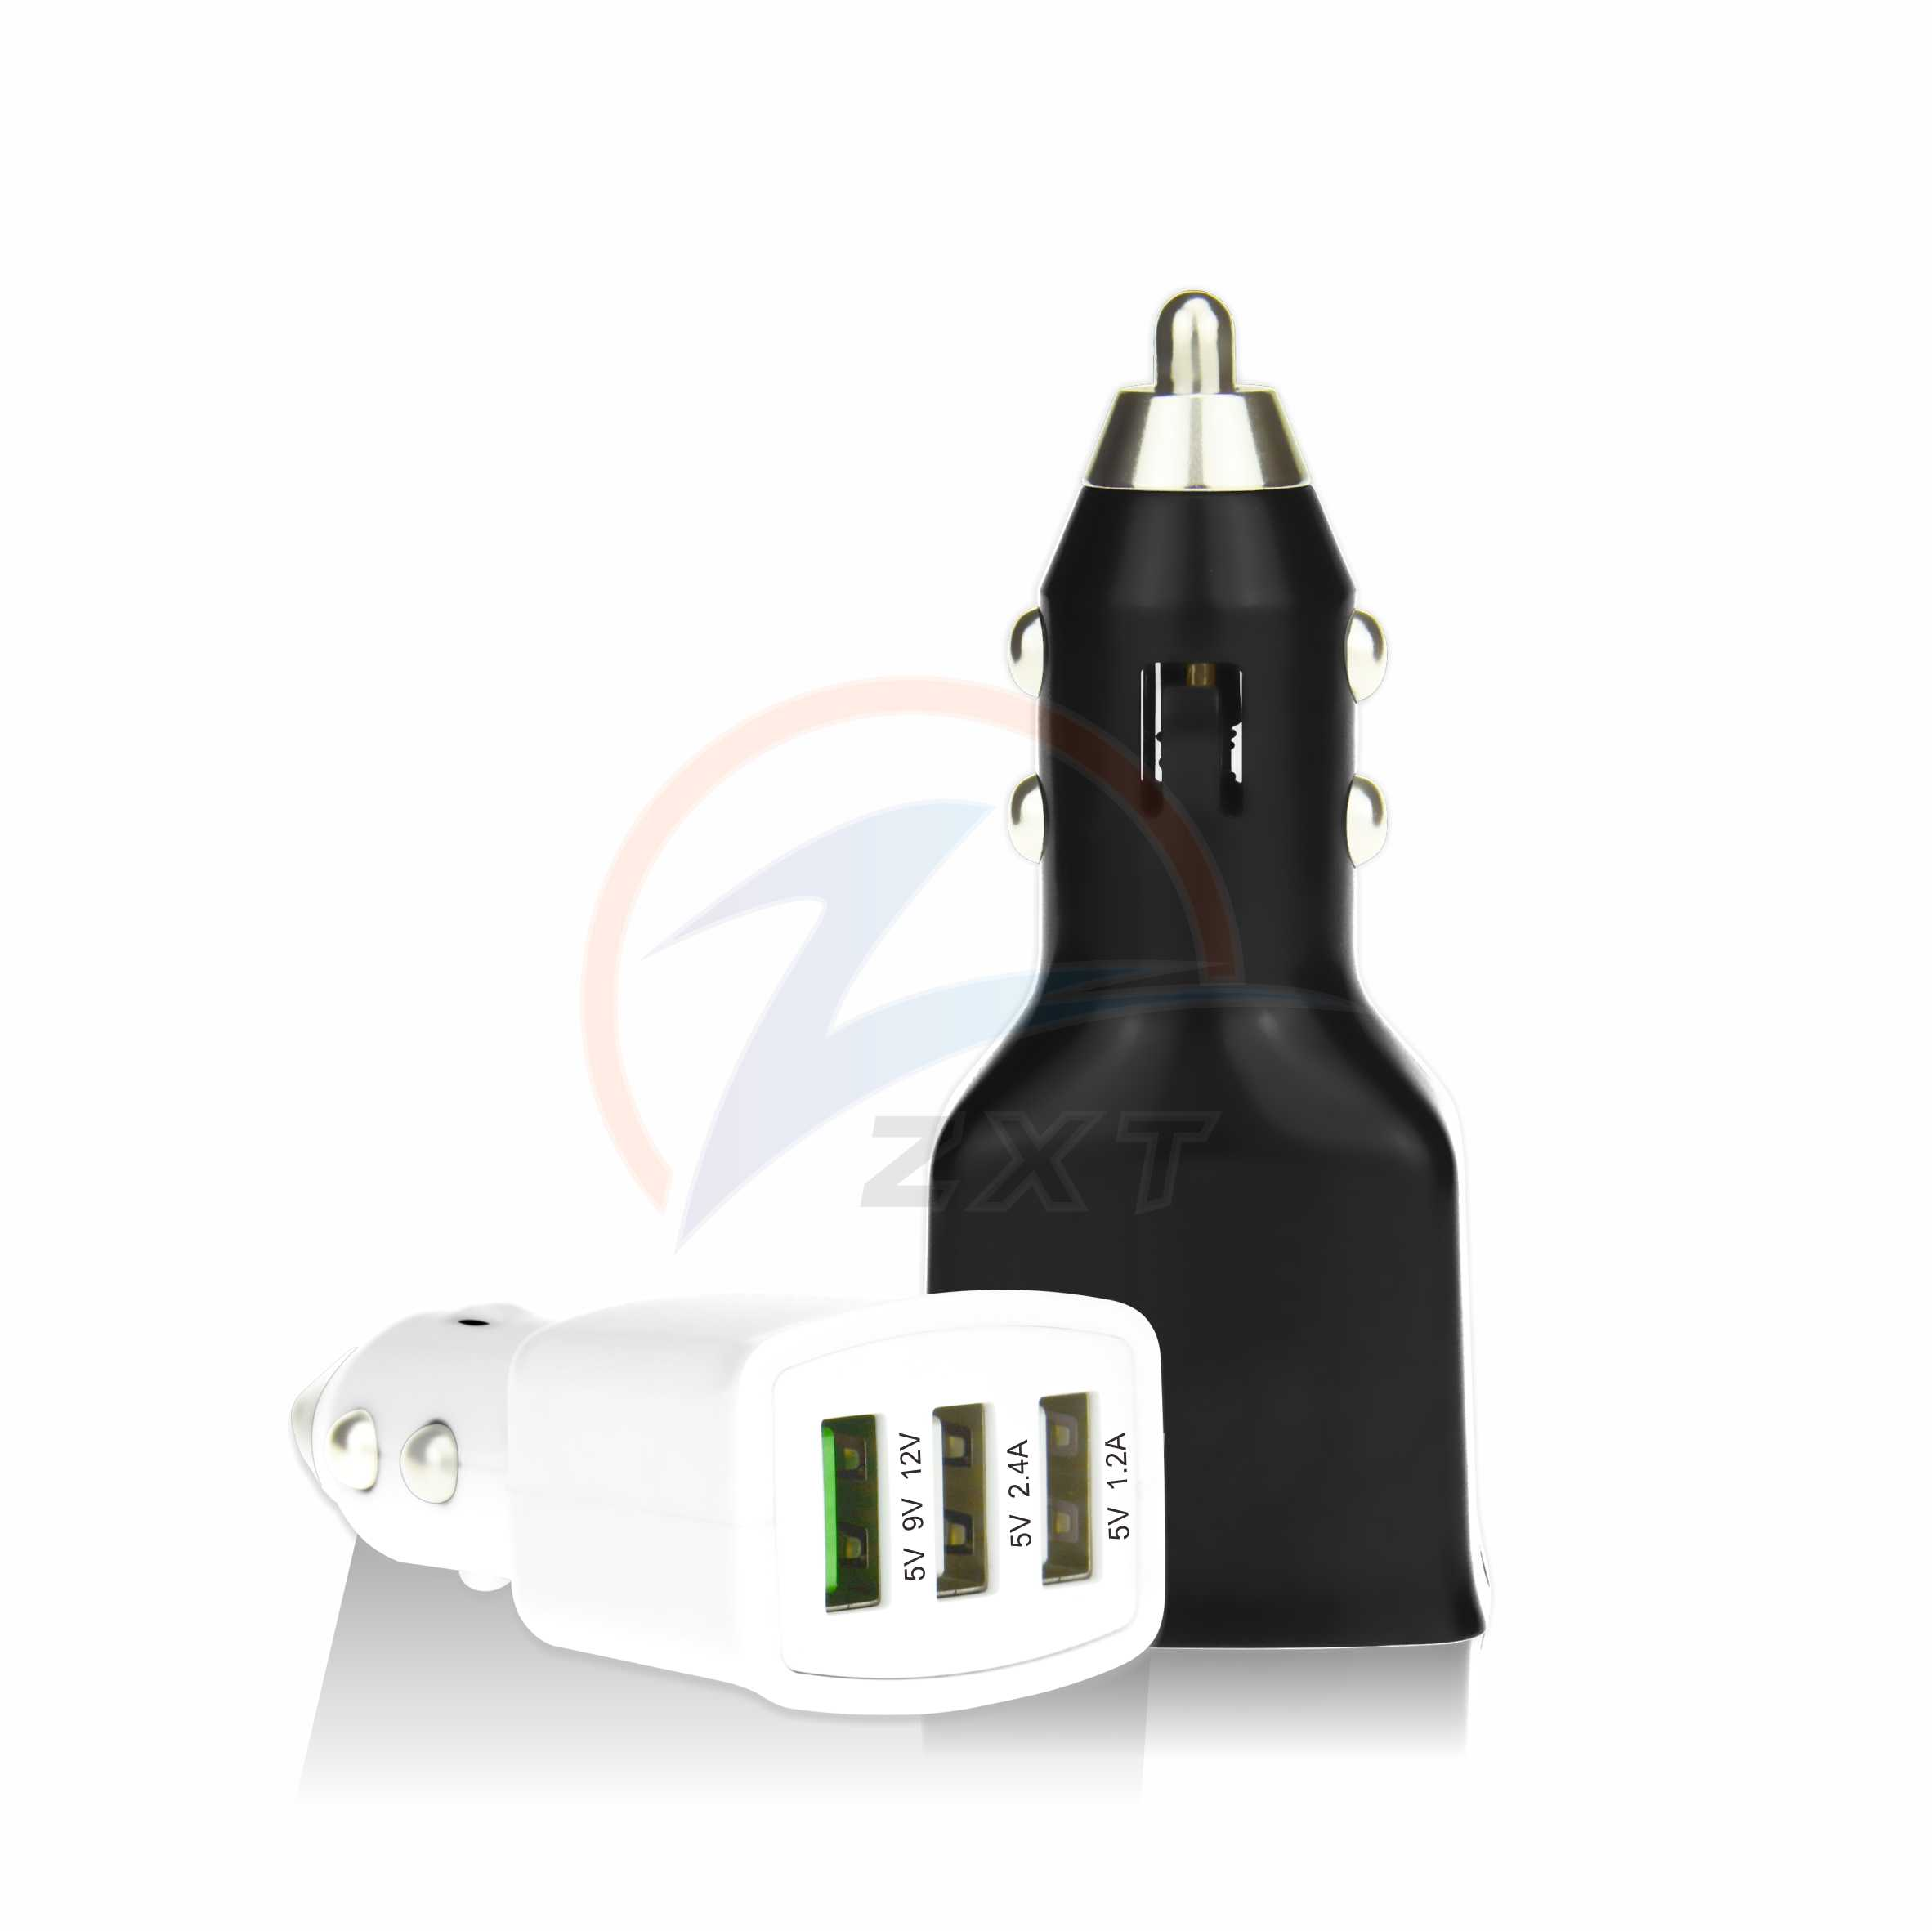 3USB Car Charger ( Fast Port + 2 Normal Ports)